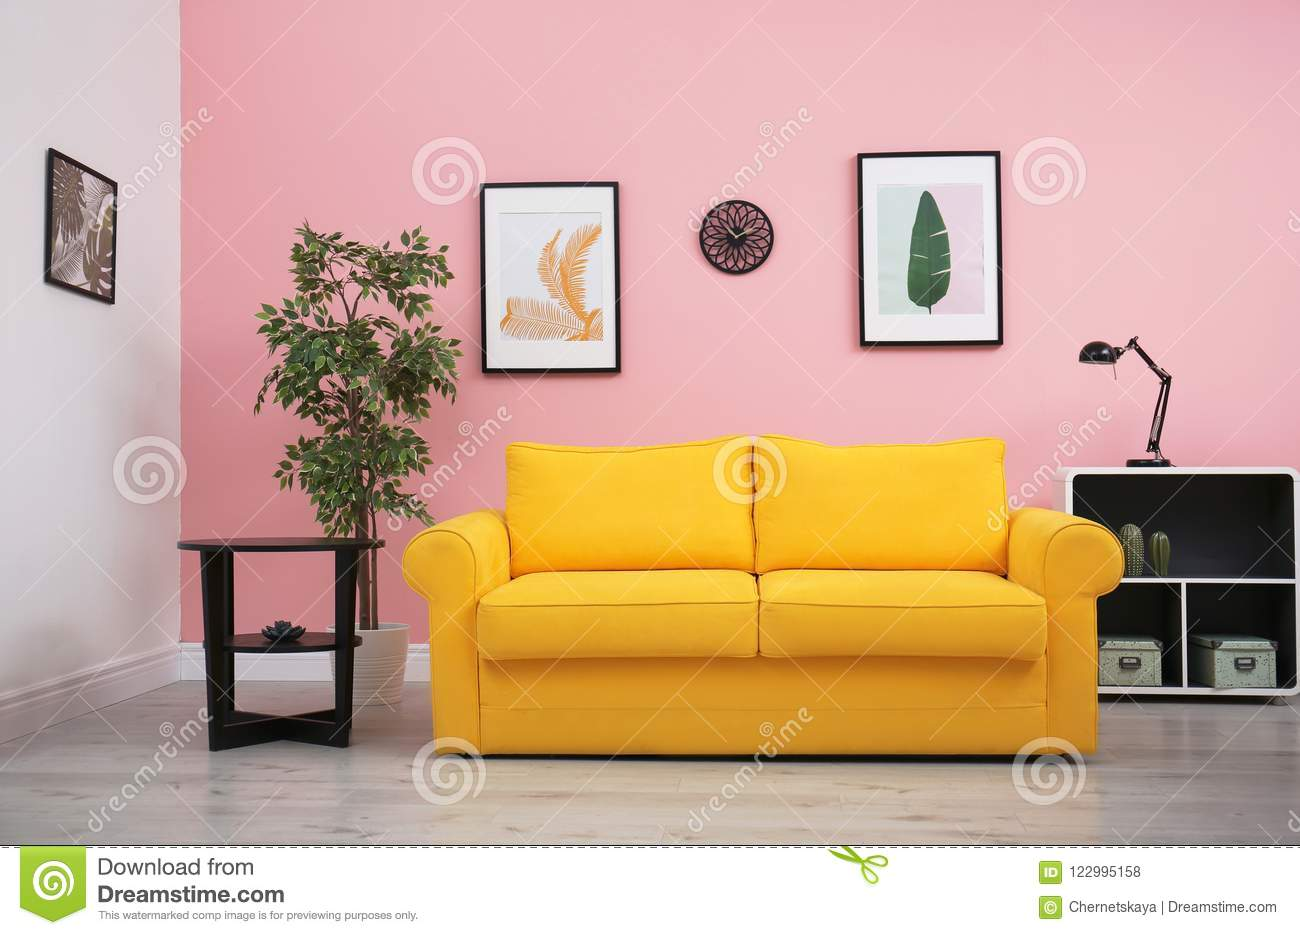 Modern Living Room Interior With Comfortable Yellow Sofa Stock Photo ...